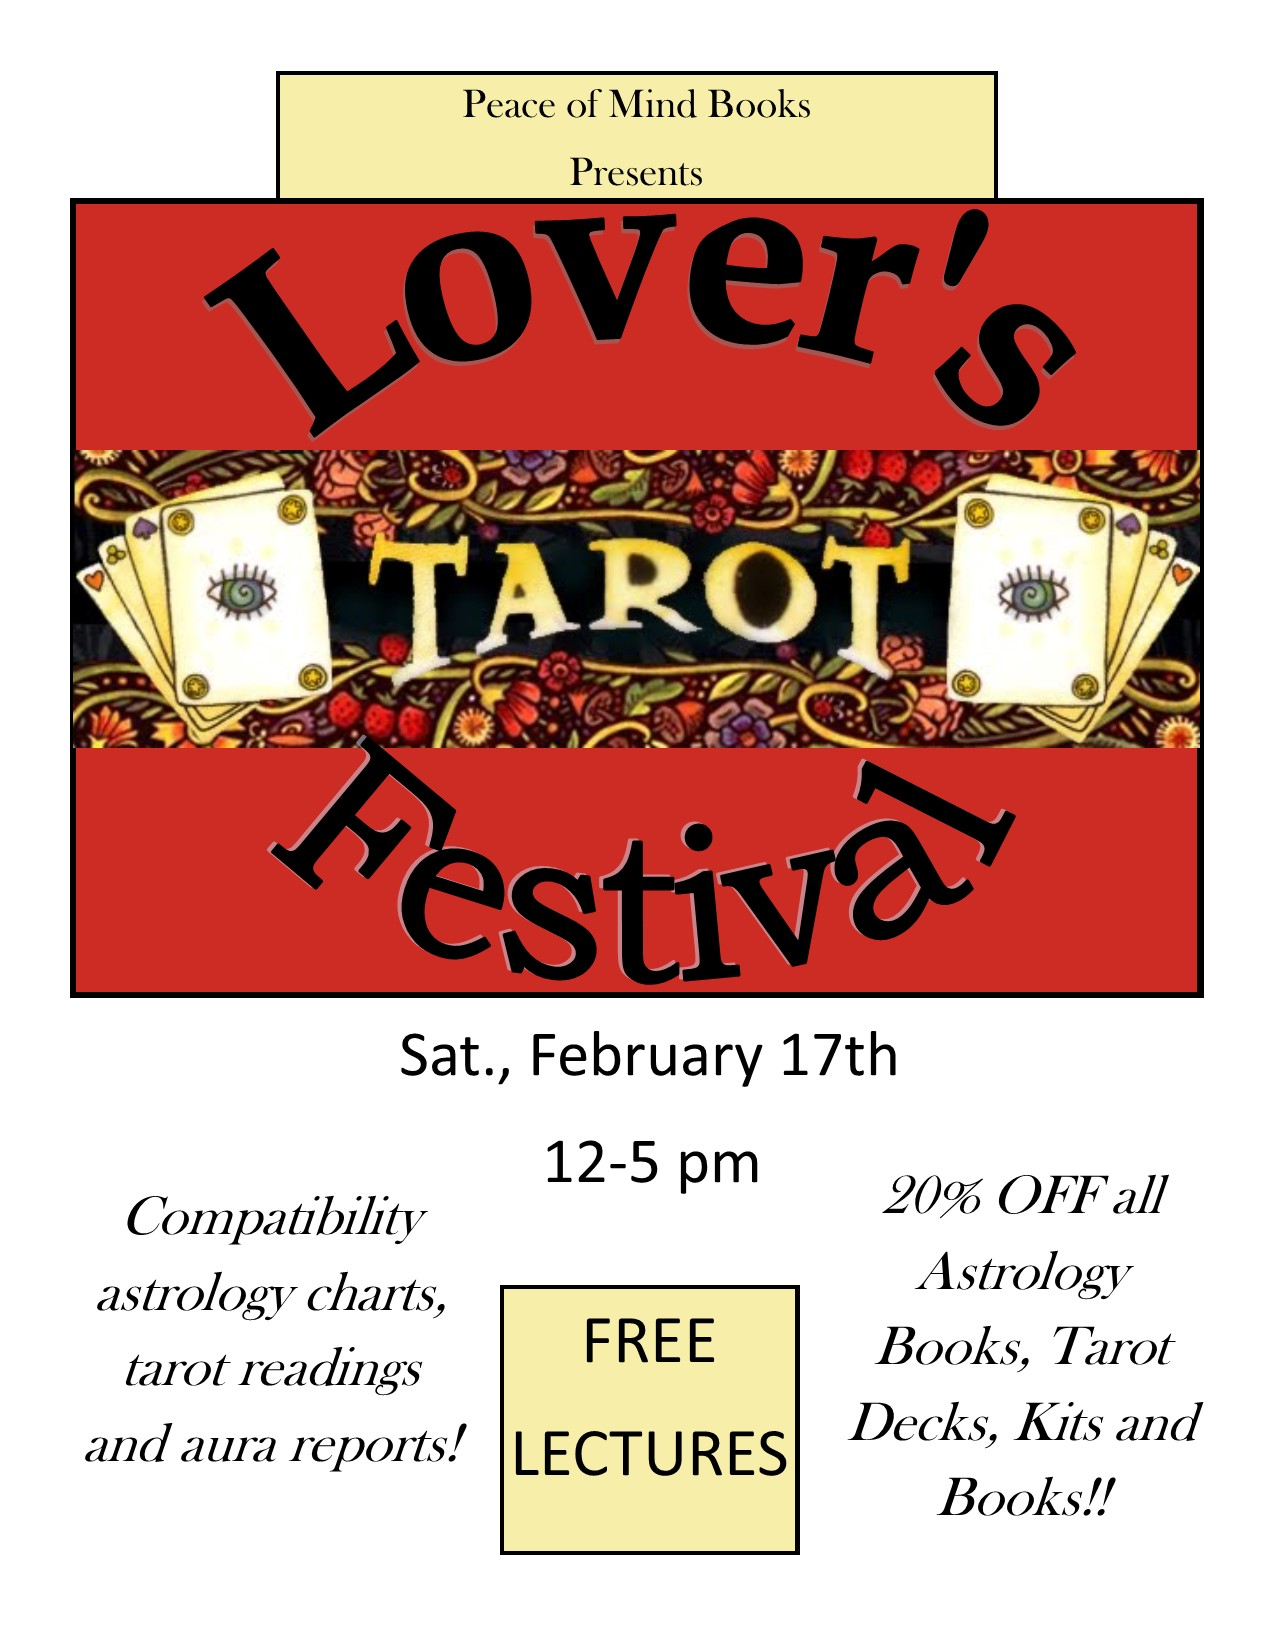 Lovers tarot festival peace of mind books festivals nvjuhfo Image collections